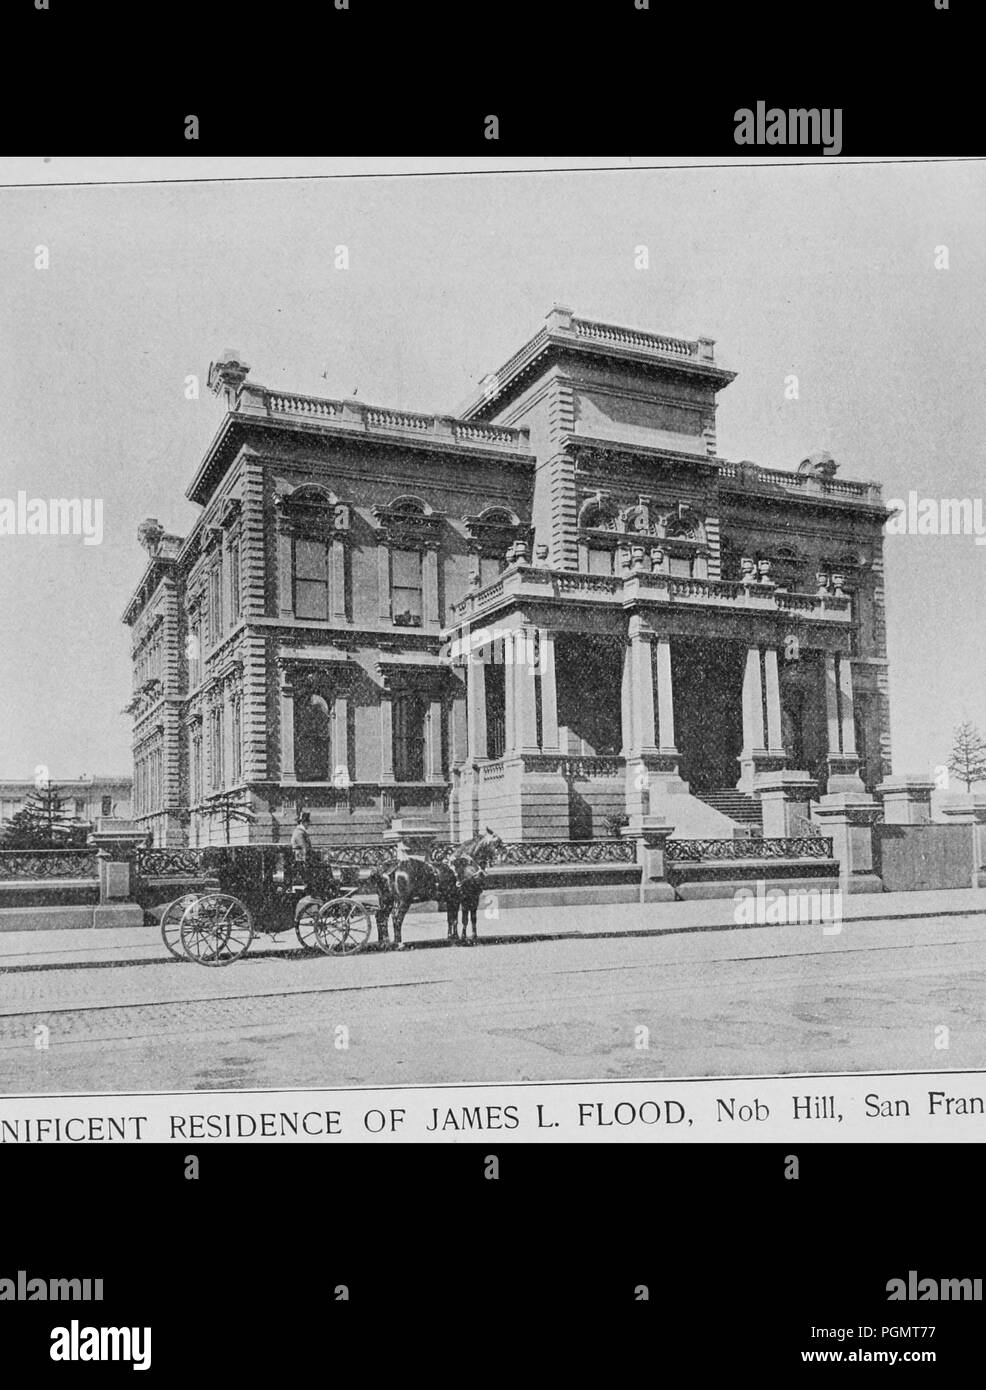 Black and white photograph, shot from a low angle, showing James C Flood's Italian Renaissance Revival style, mansion, with a horse-drawn carriage in the foreground, the only Nob Hill mansion to structurally survive the 1906 earthquake and fire in San Francisco, California, 1906. Courtesy Internet Archive. () - Stock Image